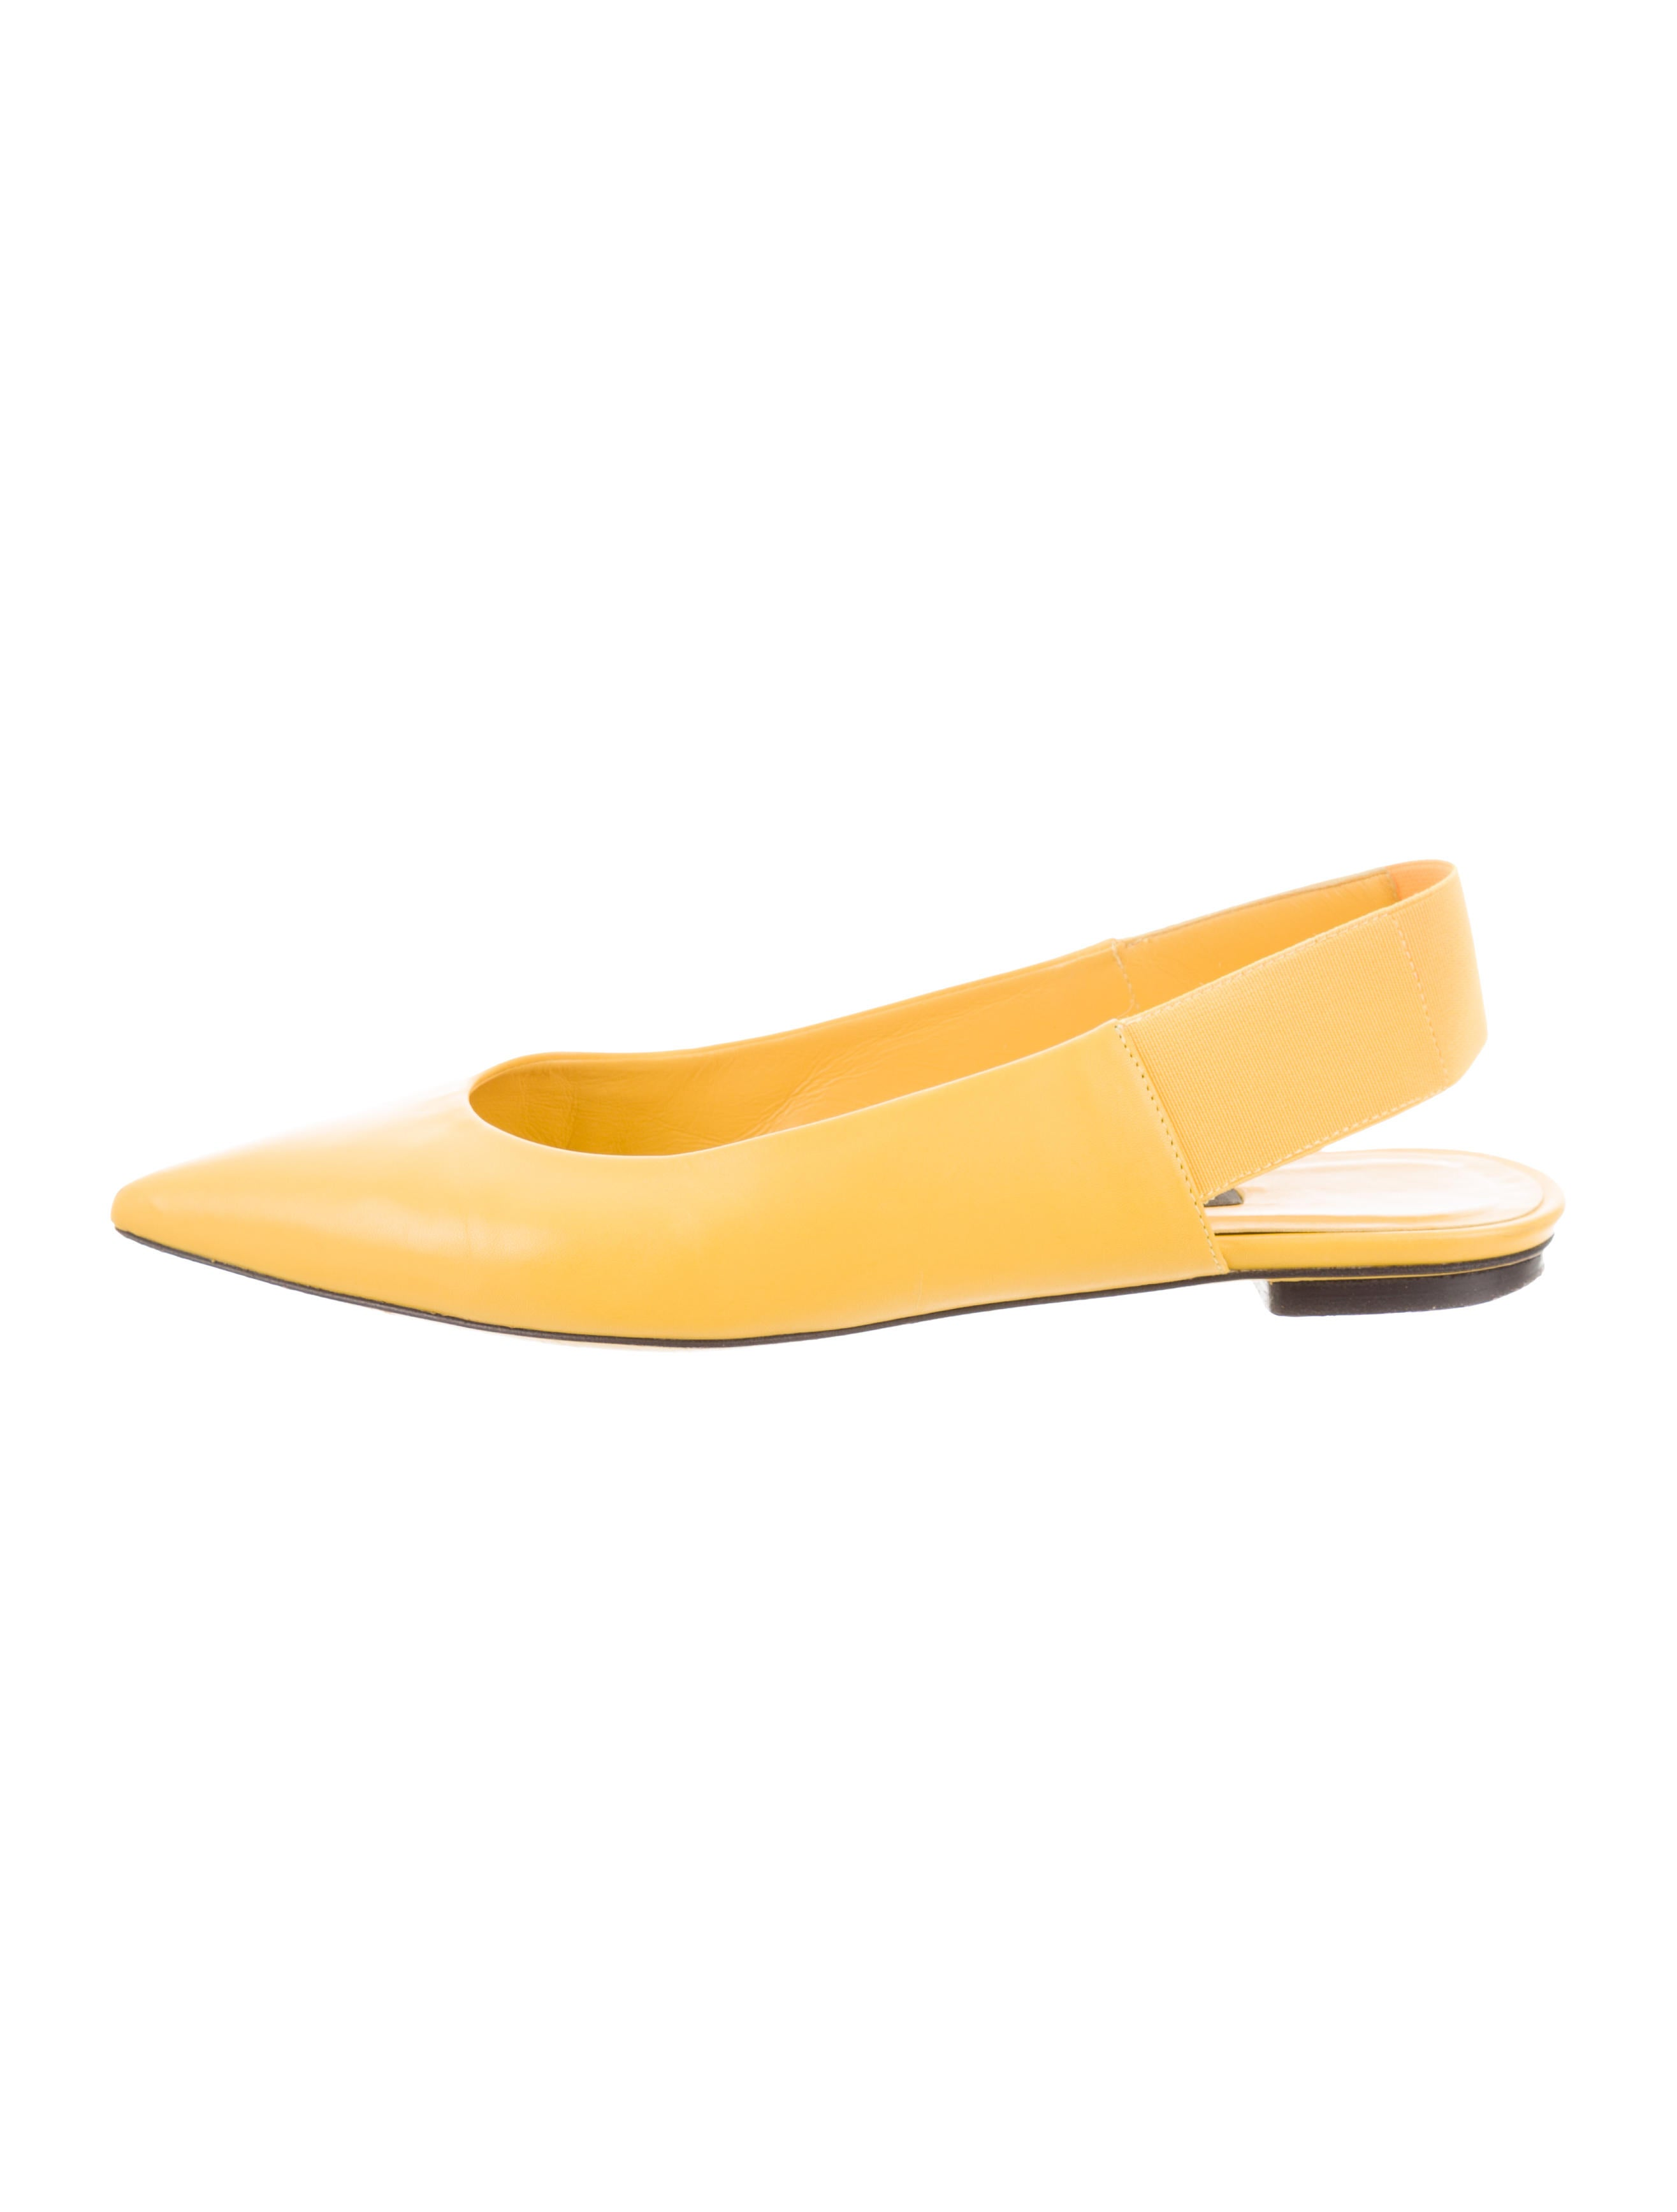 discount for nice Philippe Model Pointed-Toe Slingback Flats good selling online lYX5PK2